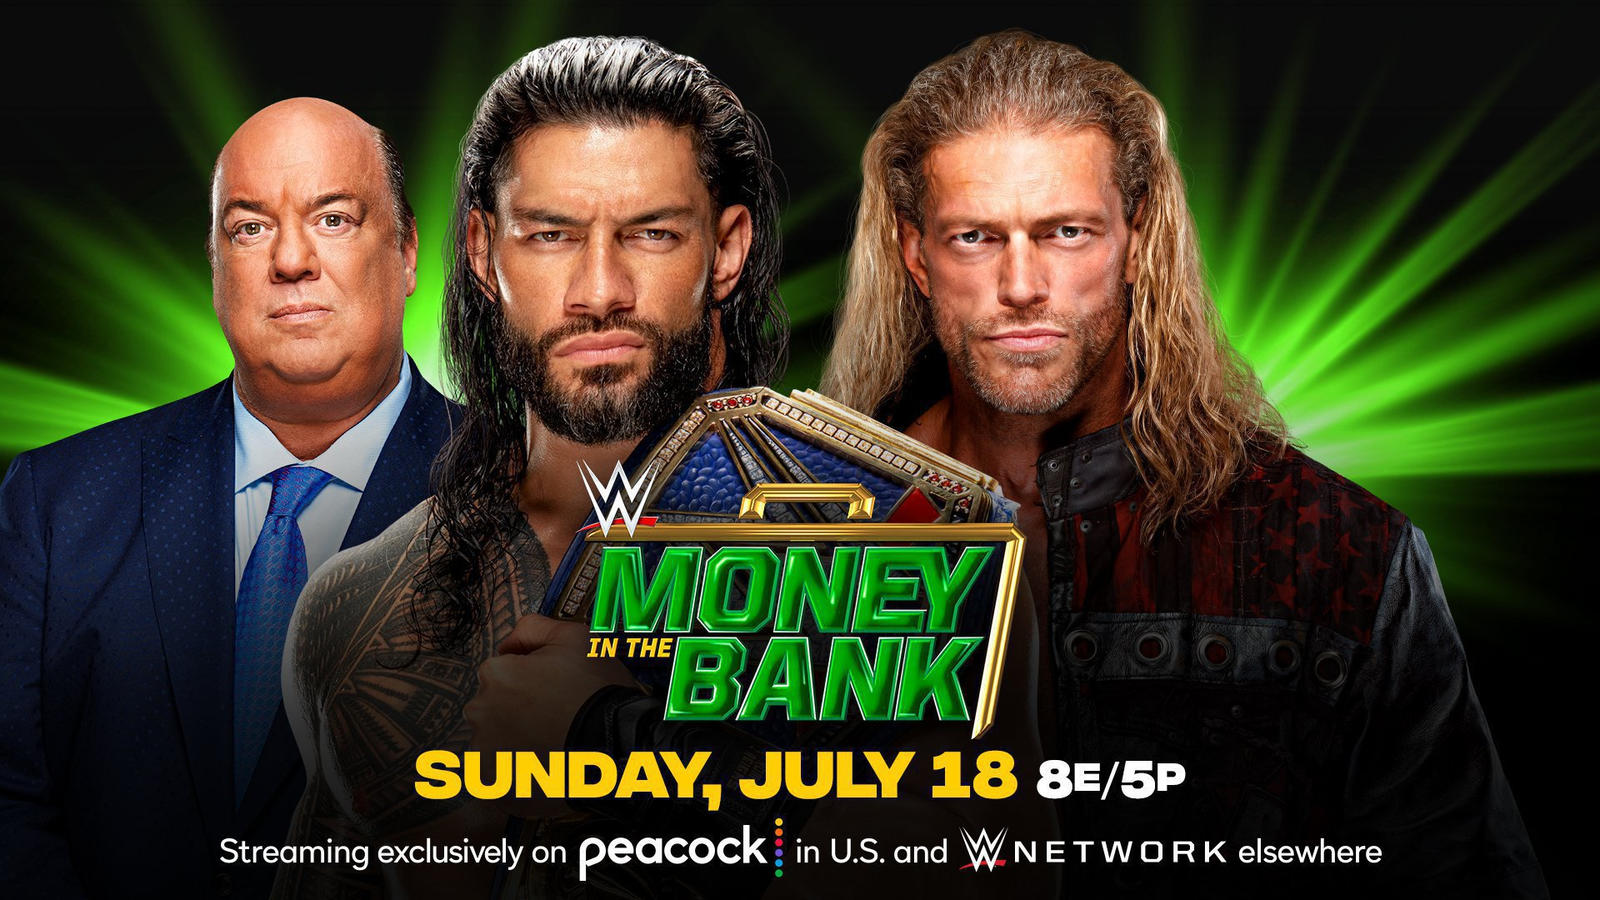 Roman Reigns On Facing Edge At WWE Money In The Bank